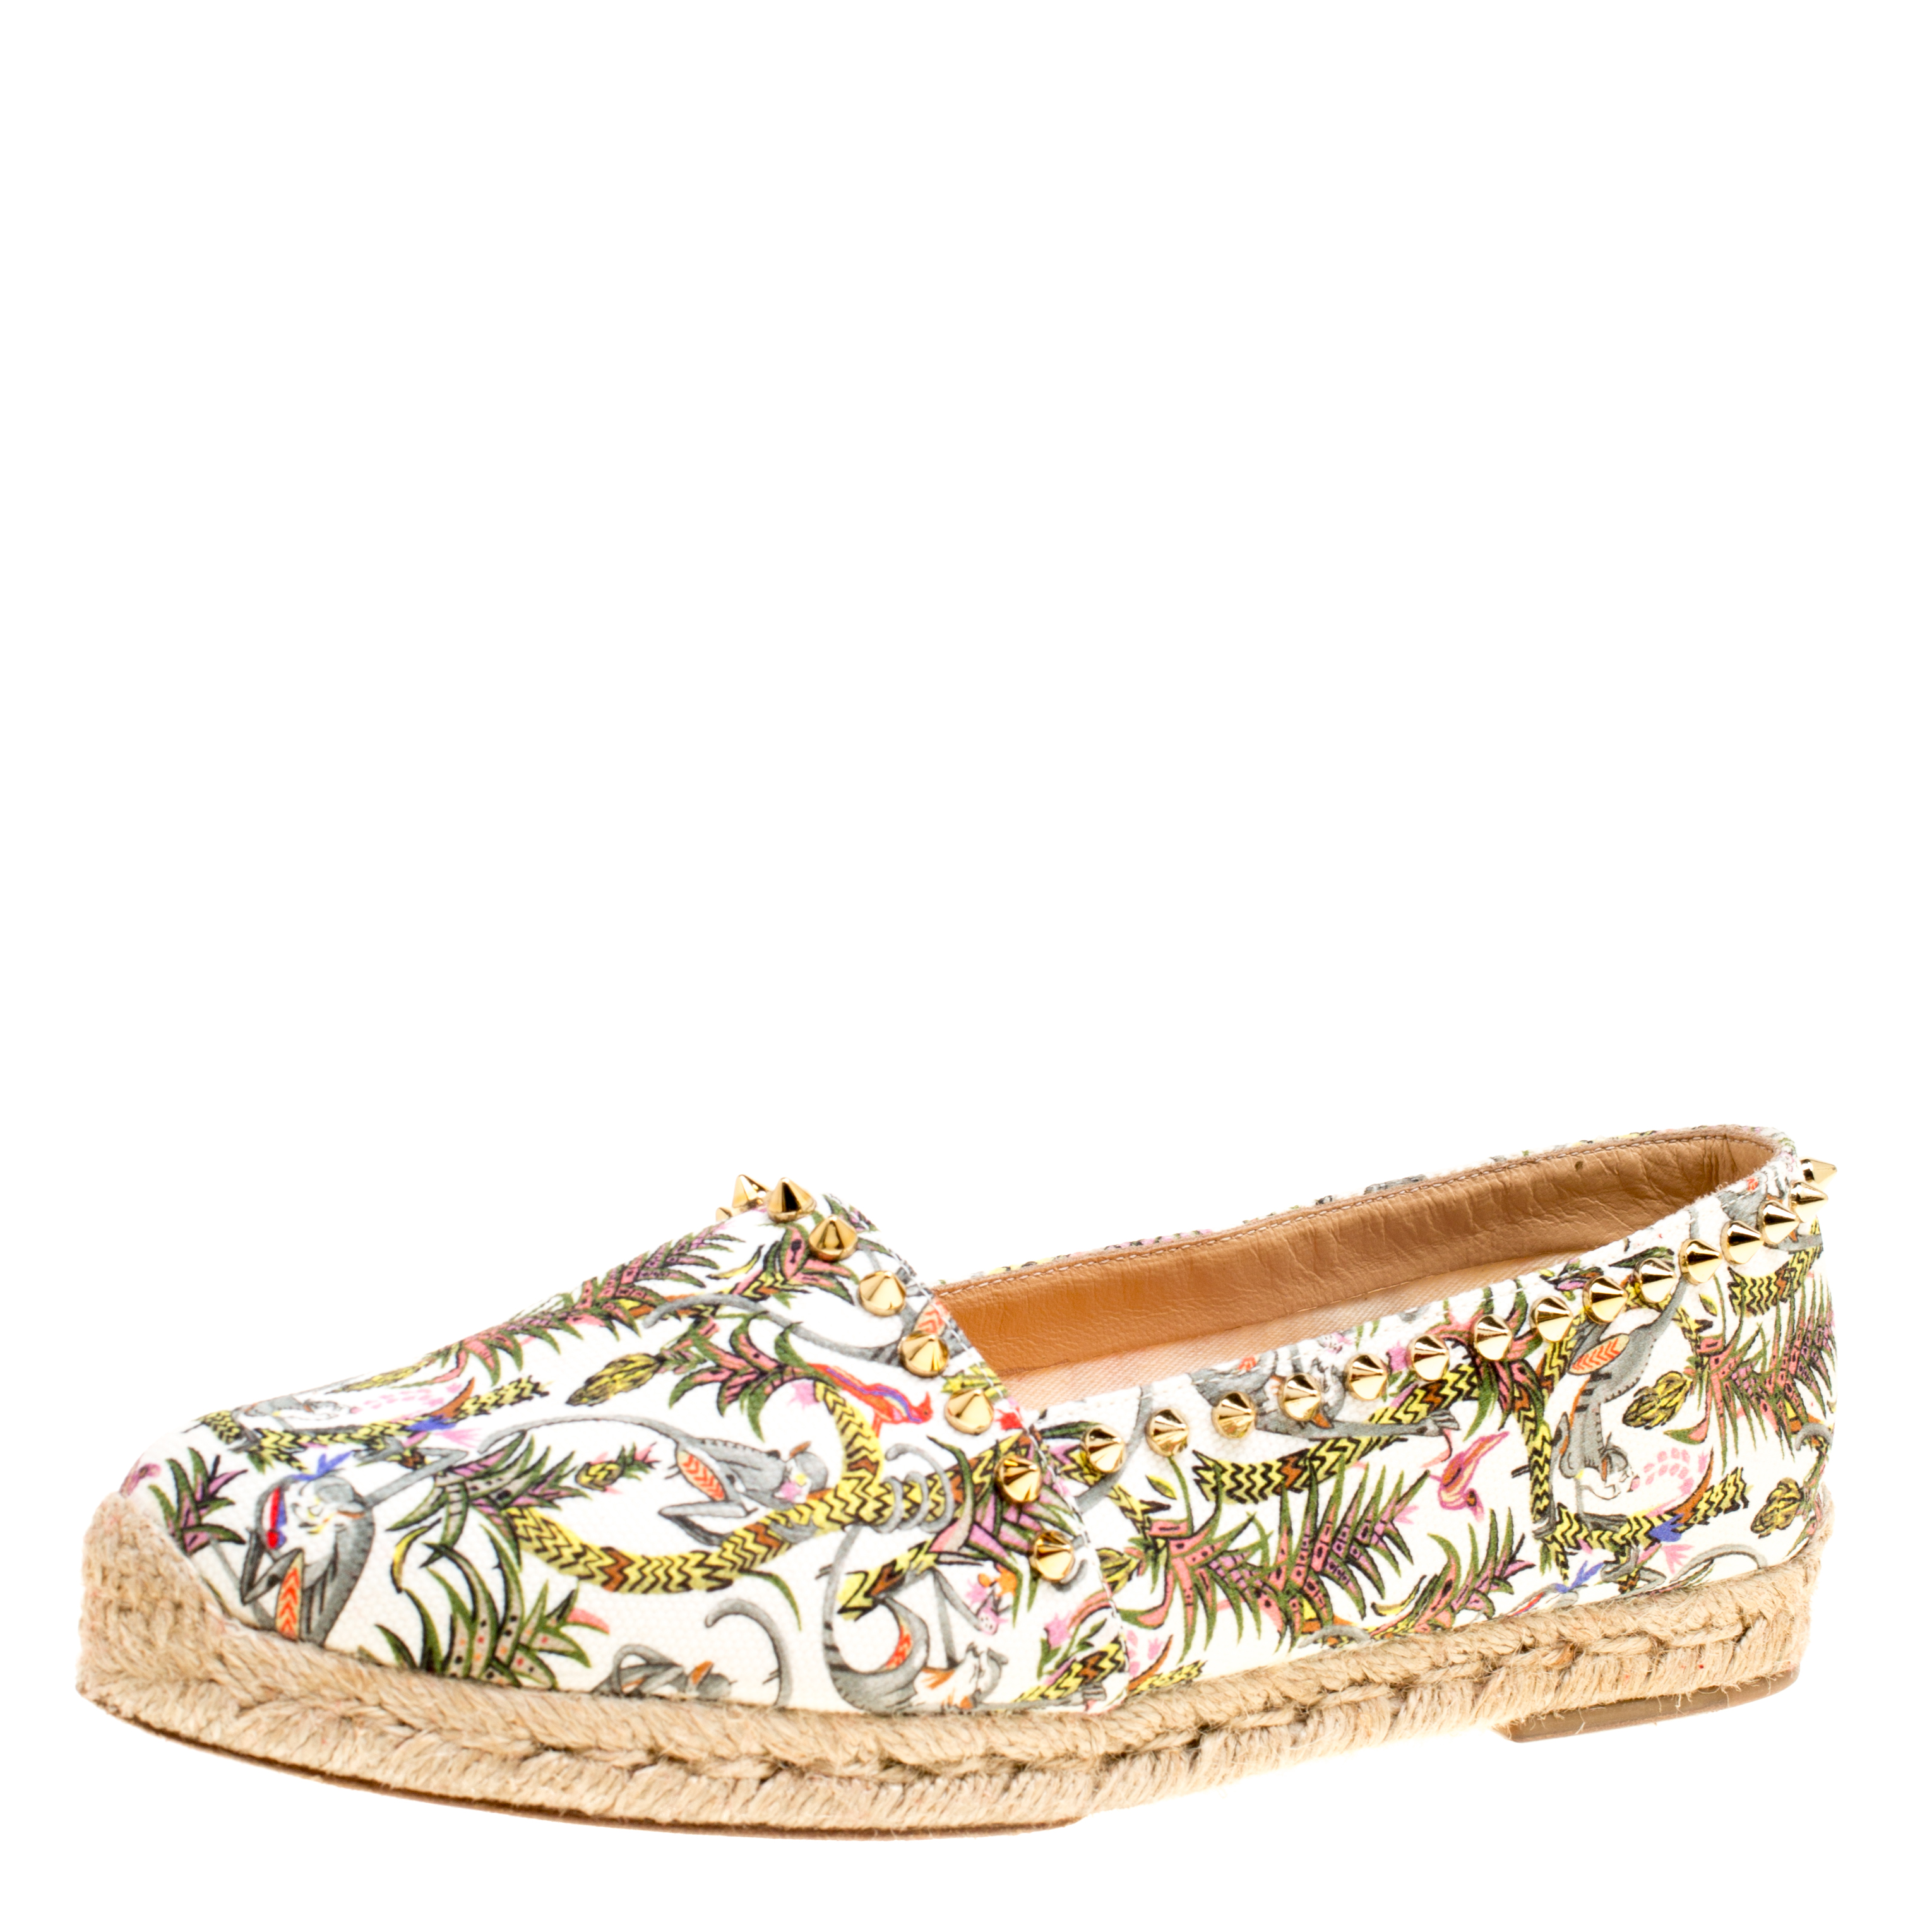 9082471b316 Christian Louboutin Ivory Multicolor Canvas Ares Spiked Espadrilles Flats  Size 39